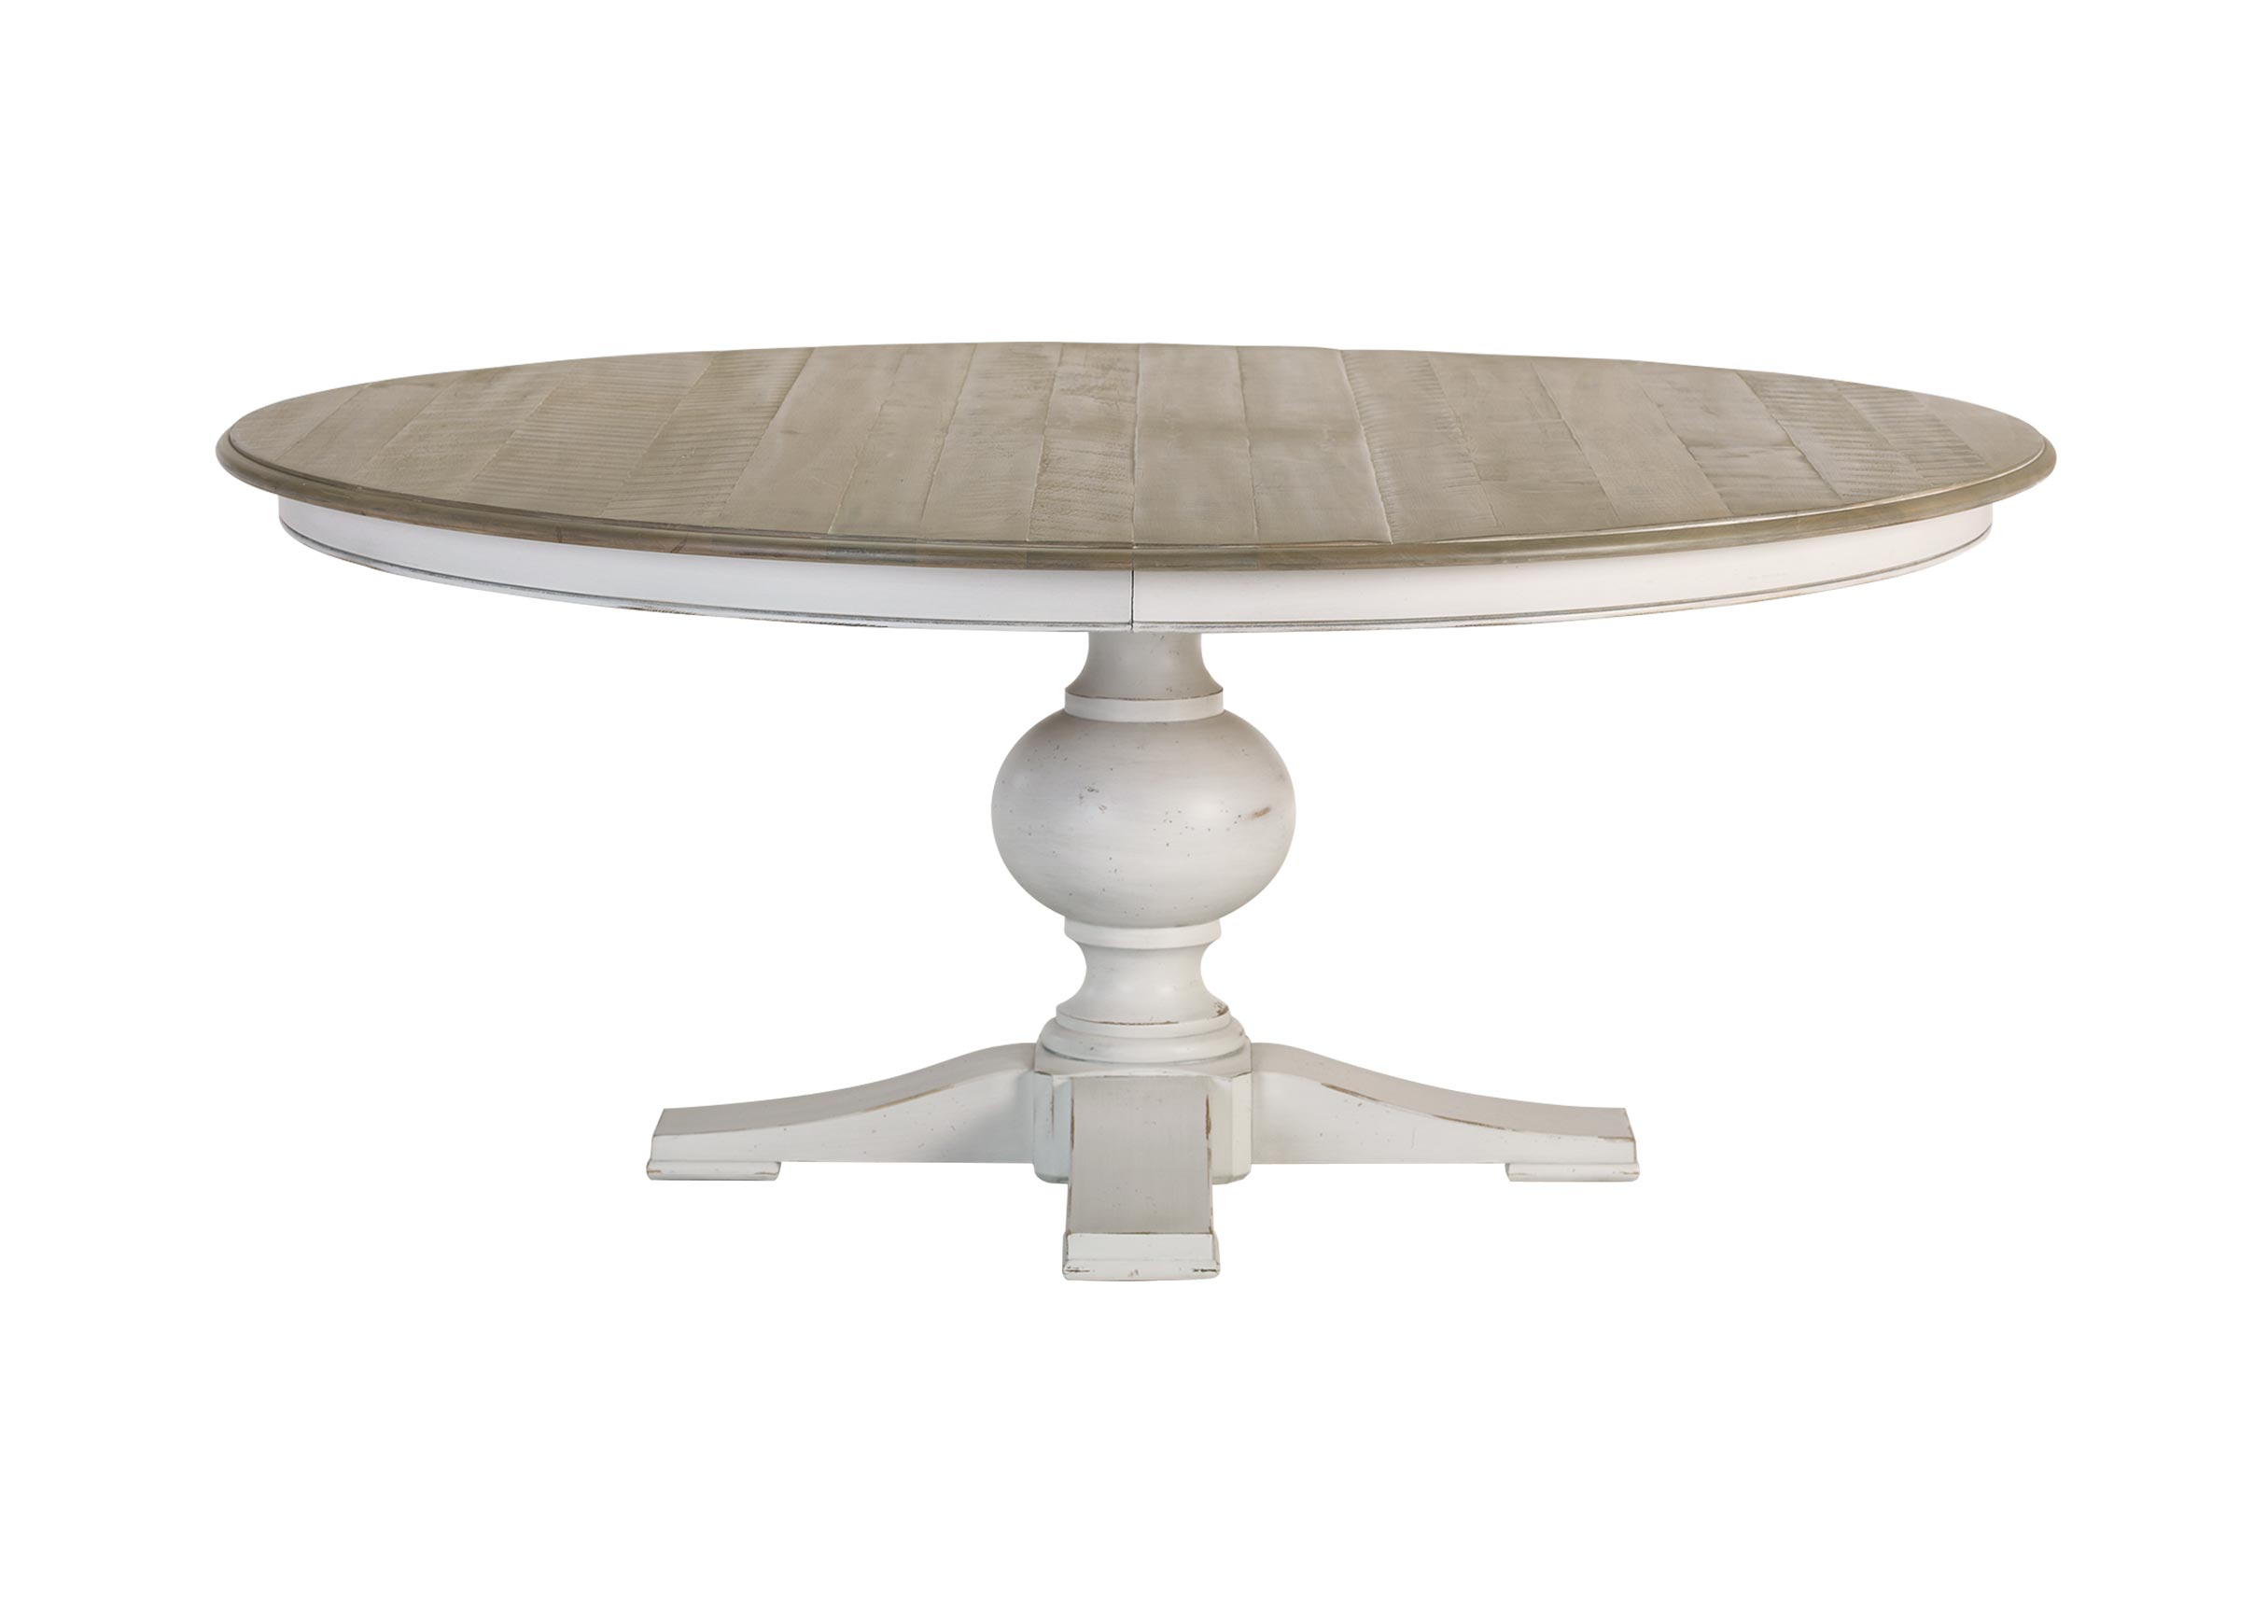 cooper rustic dining table tables ethan allen front nursery accent small white and chairs metal round pedestal entry glass mirror coffee gear wall clock large square marble mid